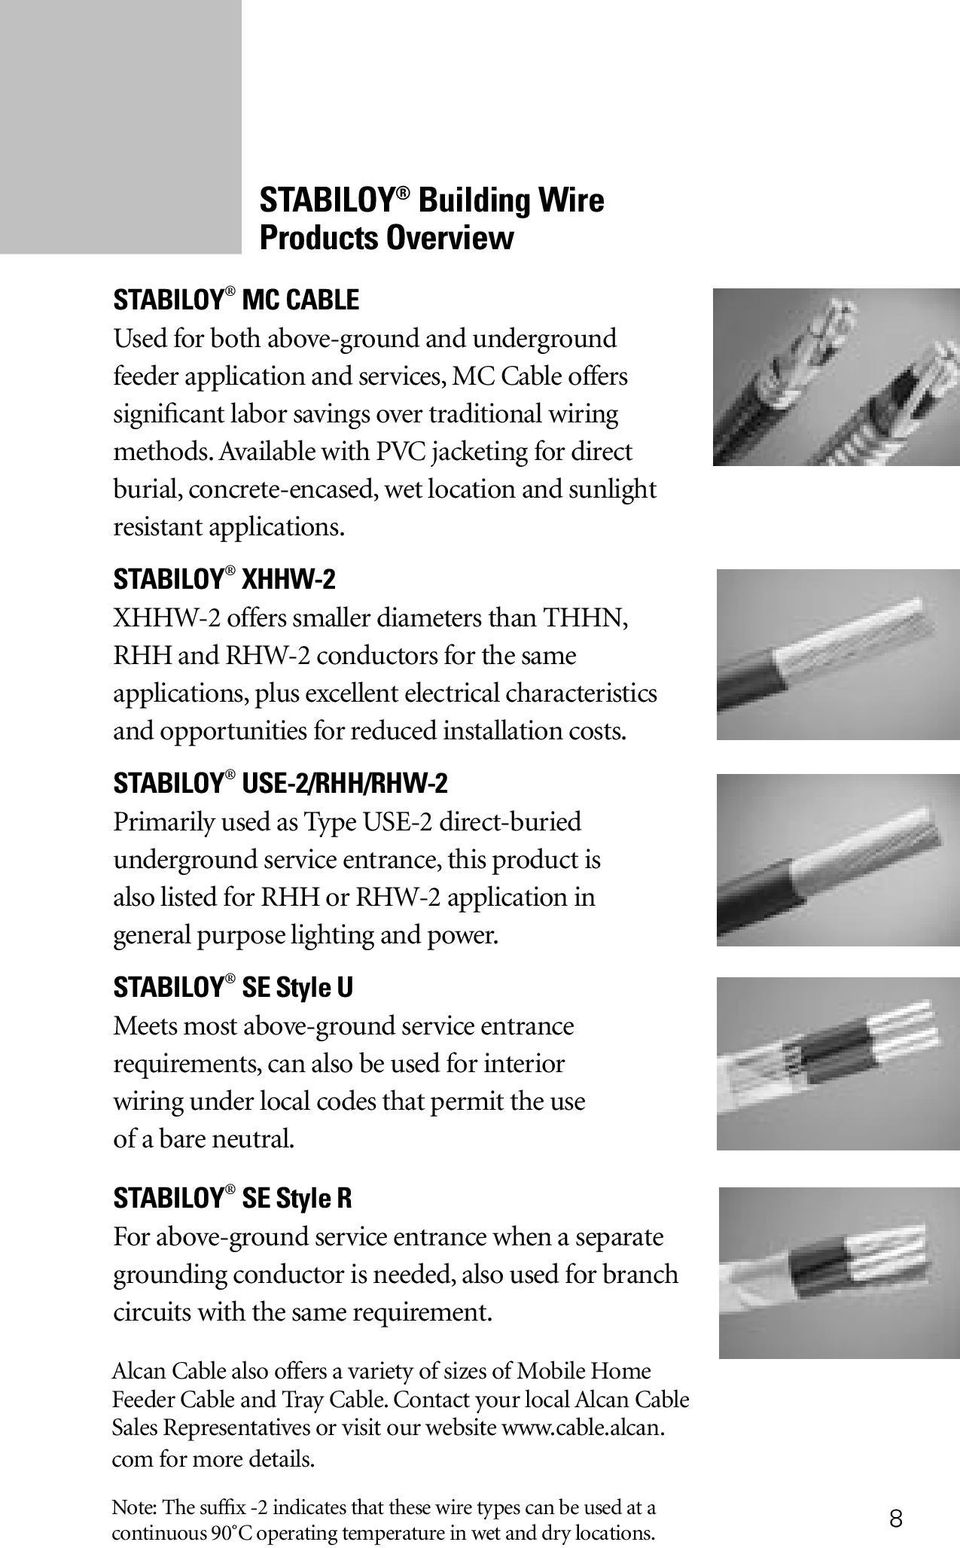 Alcan cable wireman s guide pdf stabiloy xhhw 2 xhhw 2 offers smaller diameters than thhn rhh and rhw greentooth Images